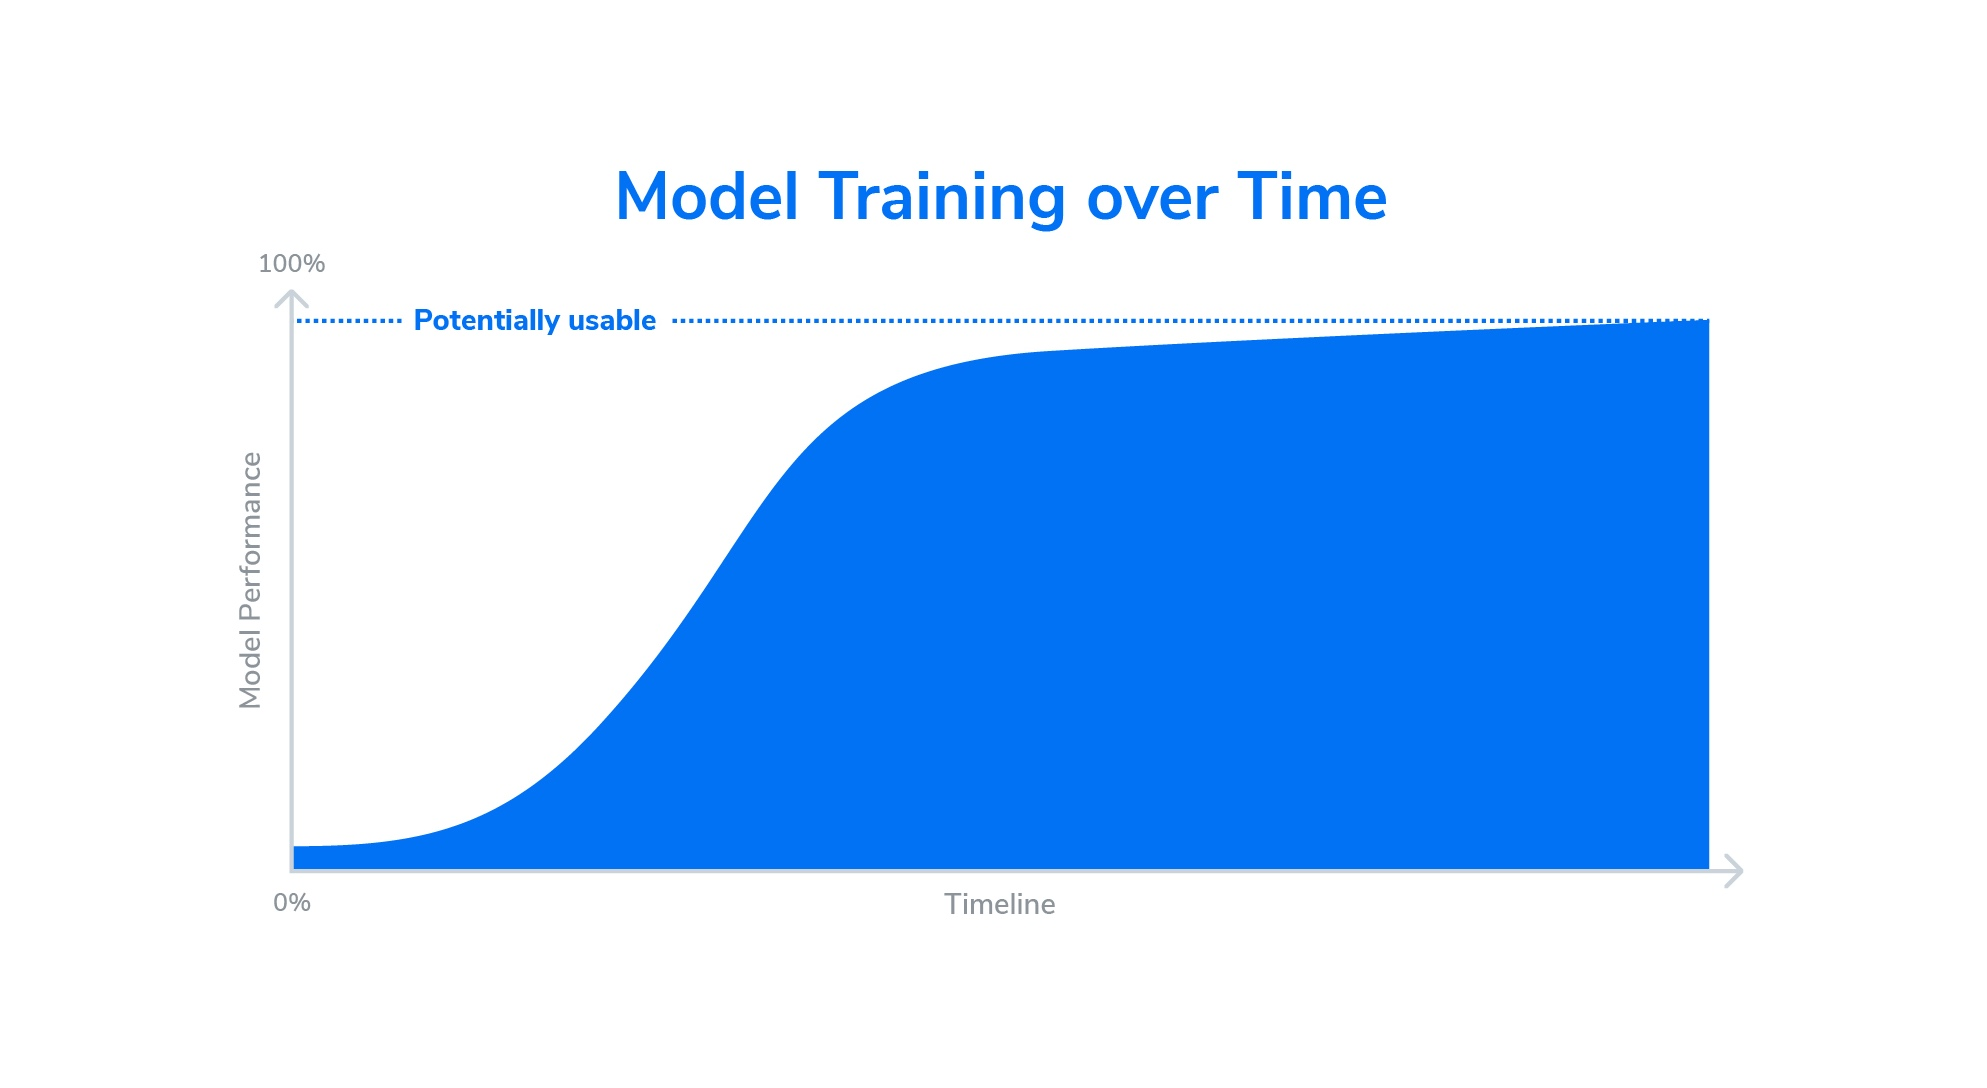 Machine Learning model trained over time